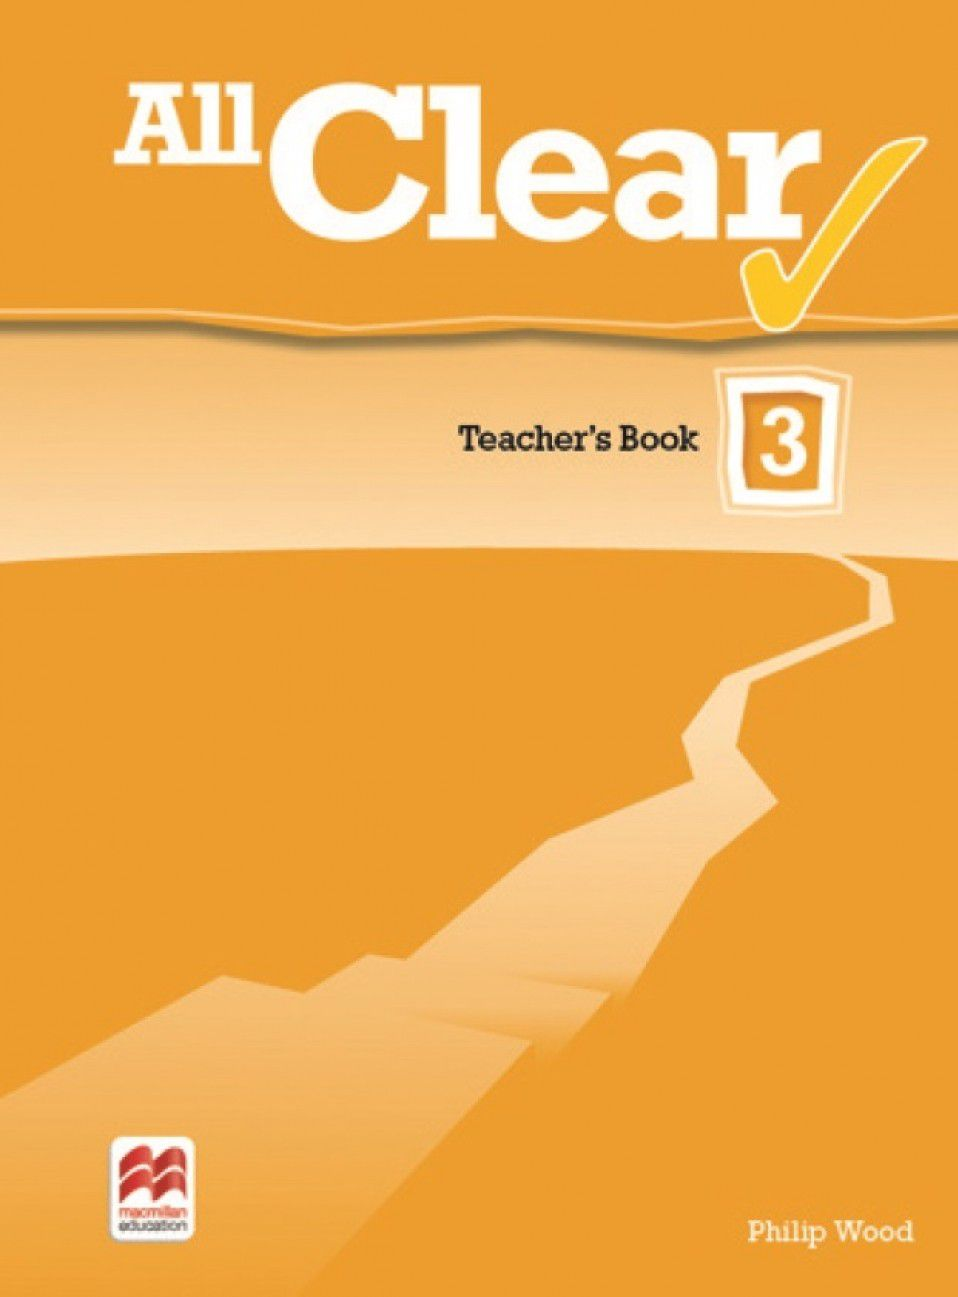 ALL CLEAR TEACHERS BOOK PACK-3